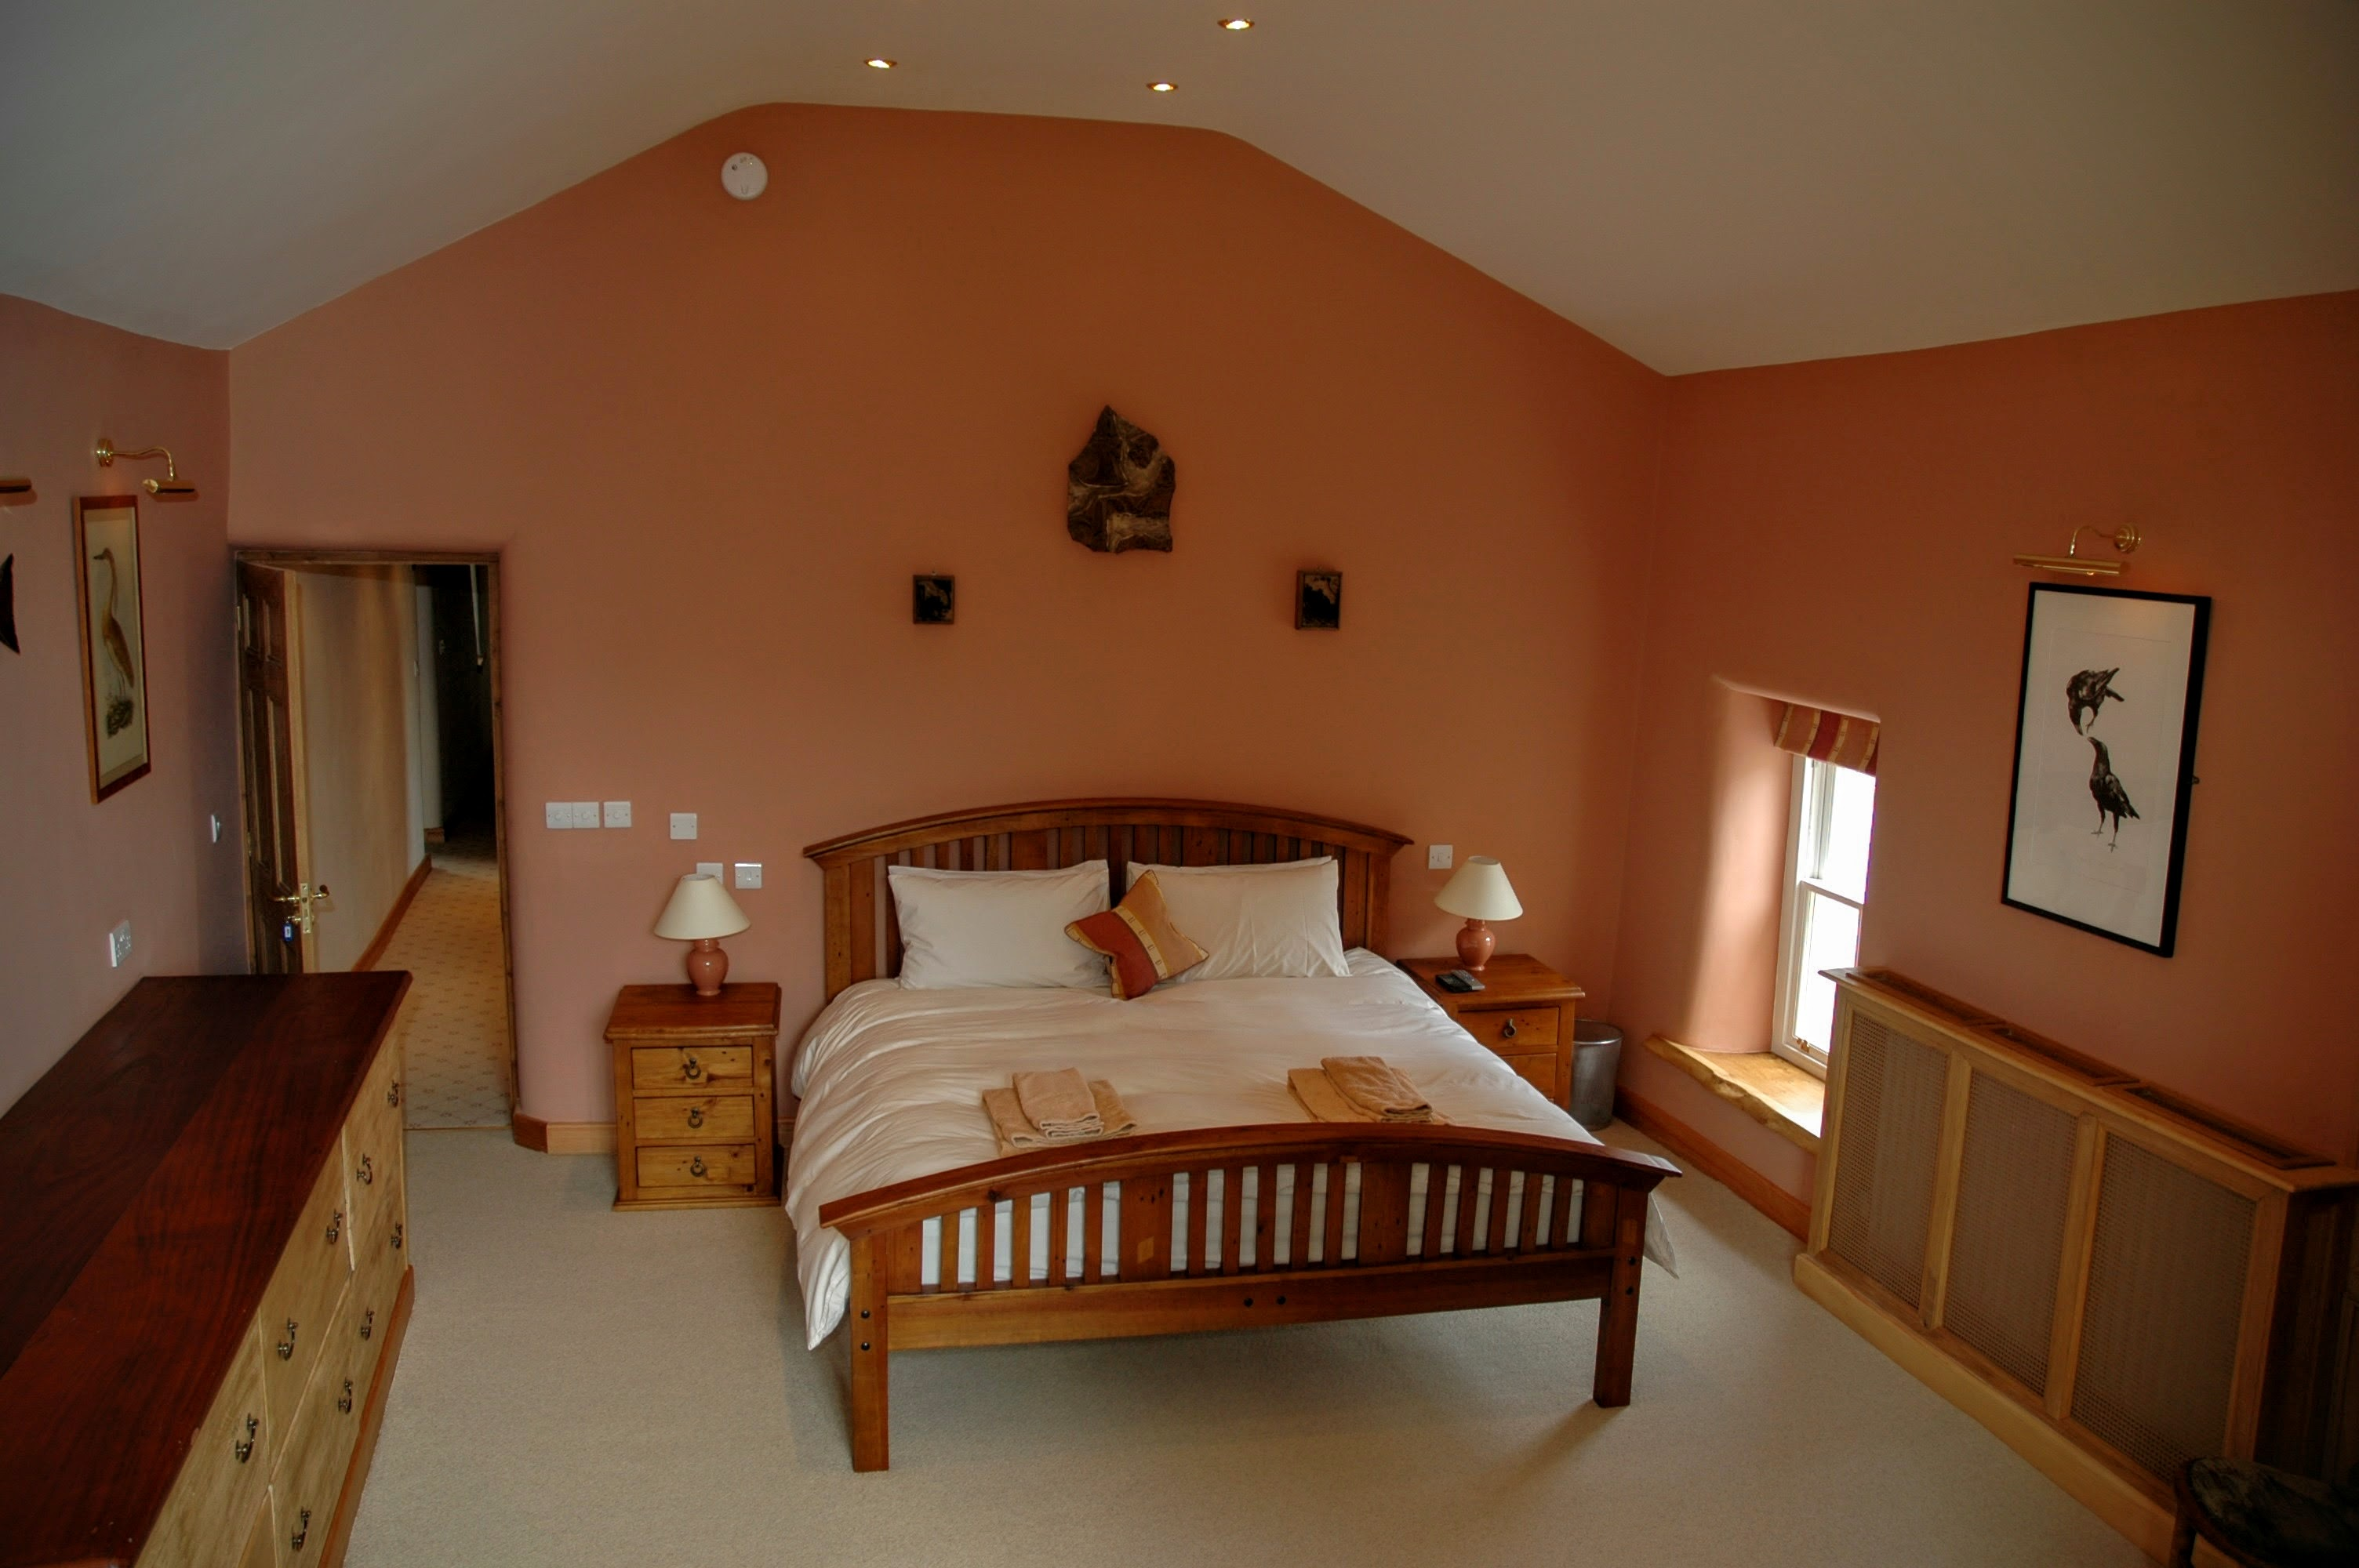 Master bedroom - Yew Tree Farm Reagill